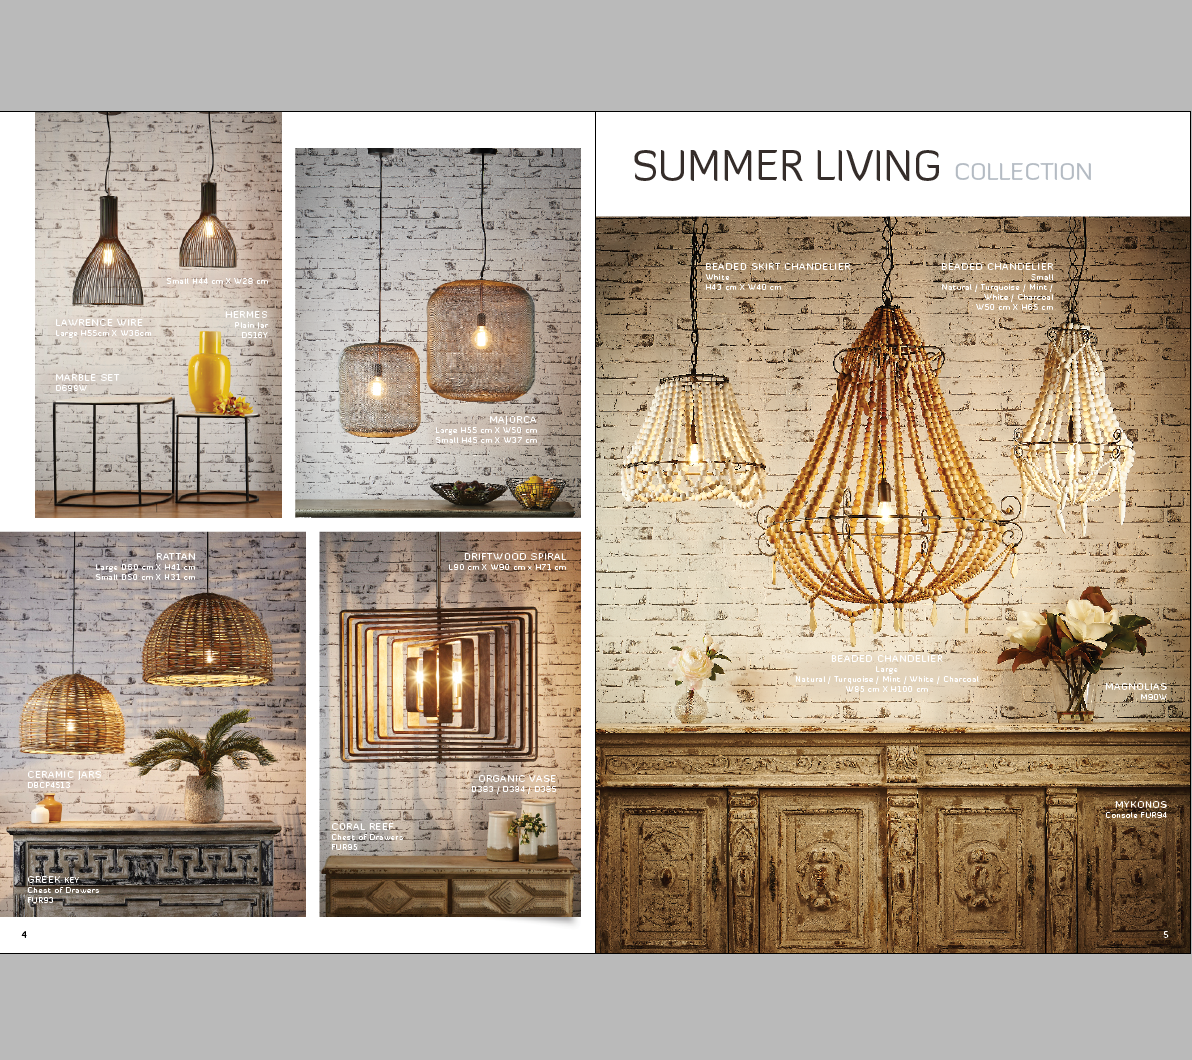 Pin by Catherine Tate on EMAC AND LAWTON : DECOR • LAMPS • INTERIORS ...